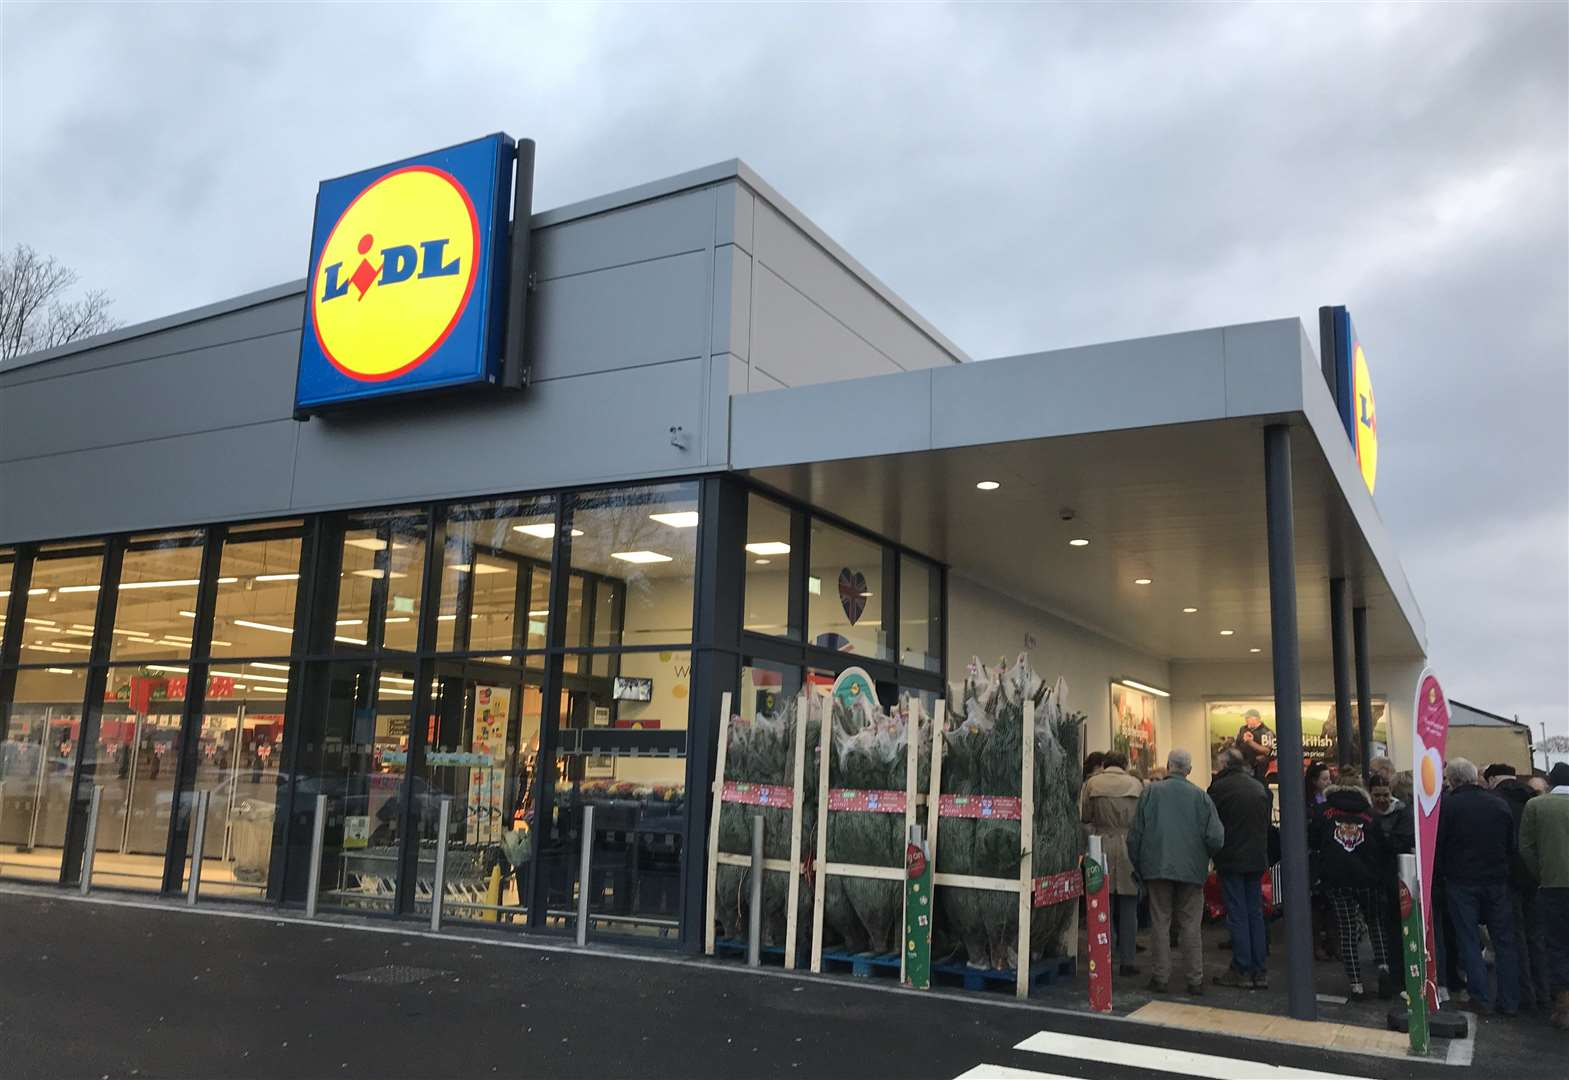 Shoppers keen for a Lidl bargain